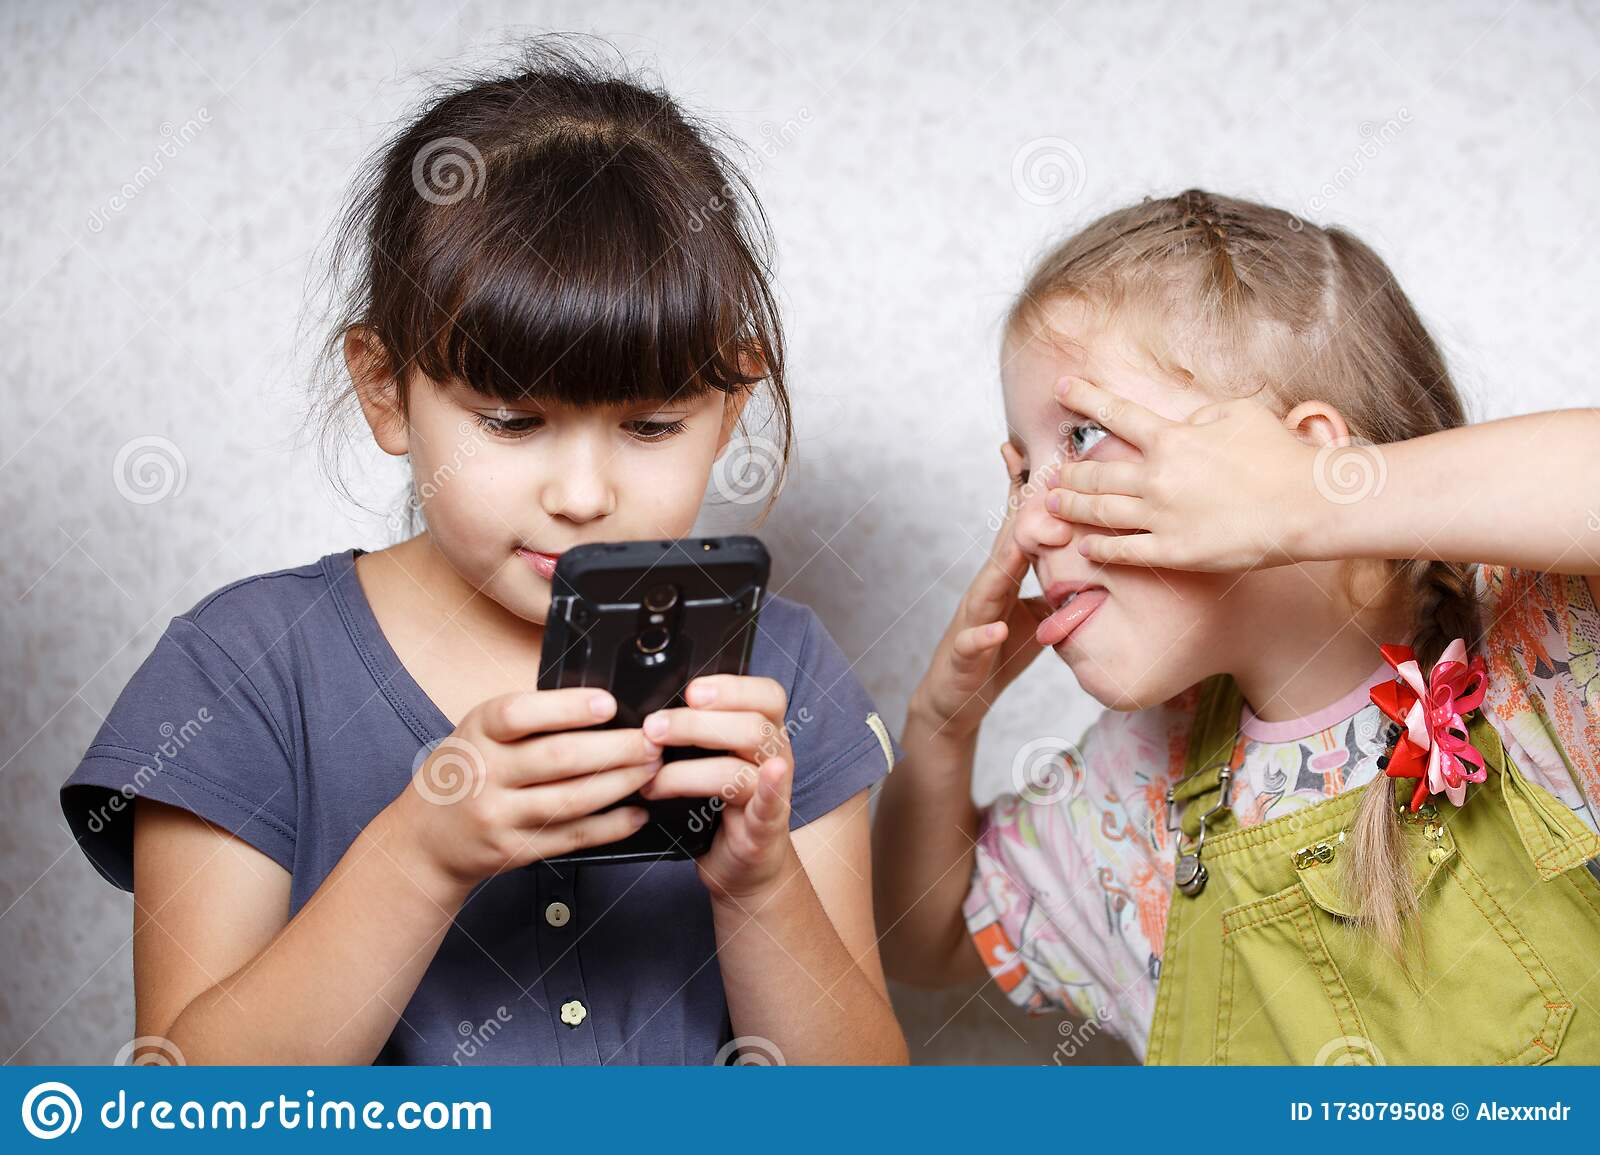 Children Play On The Mobile Phone In Games Stock Photo Image Of Lying Digital 173079508